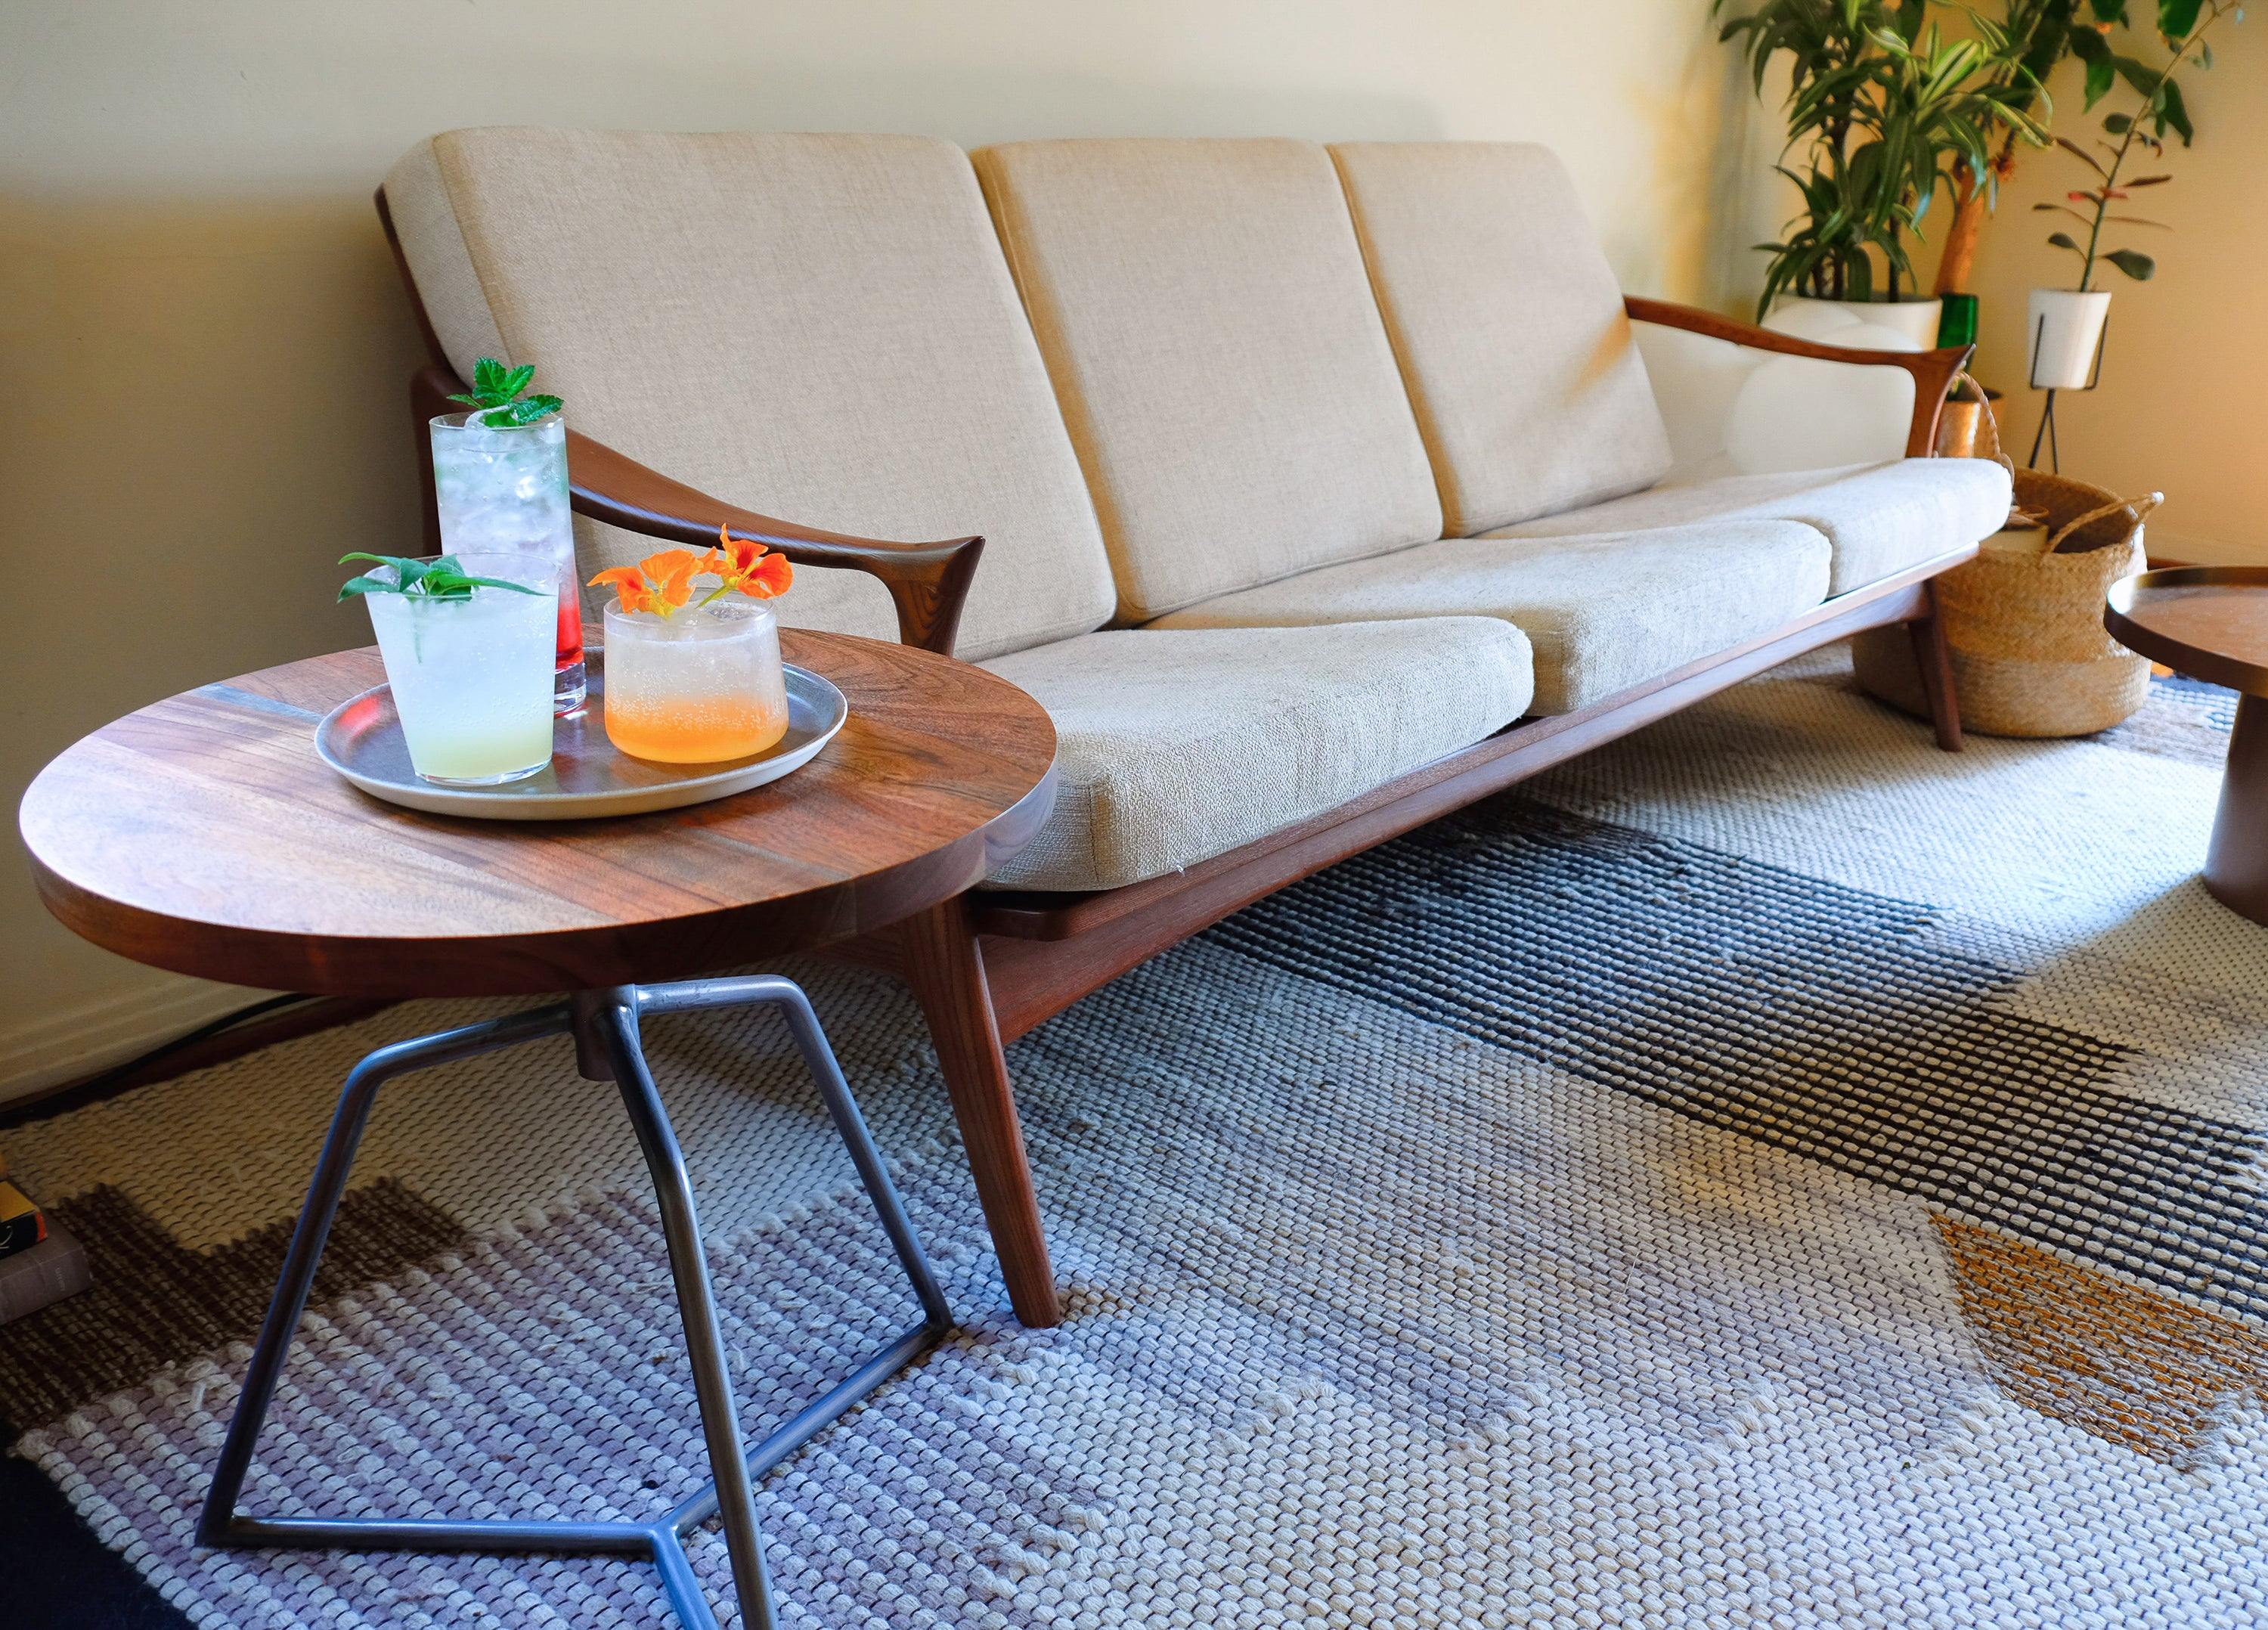 CB2 Dot side table with couch